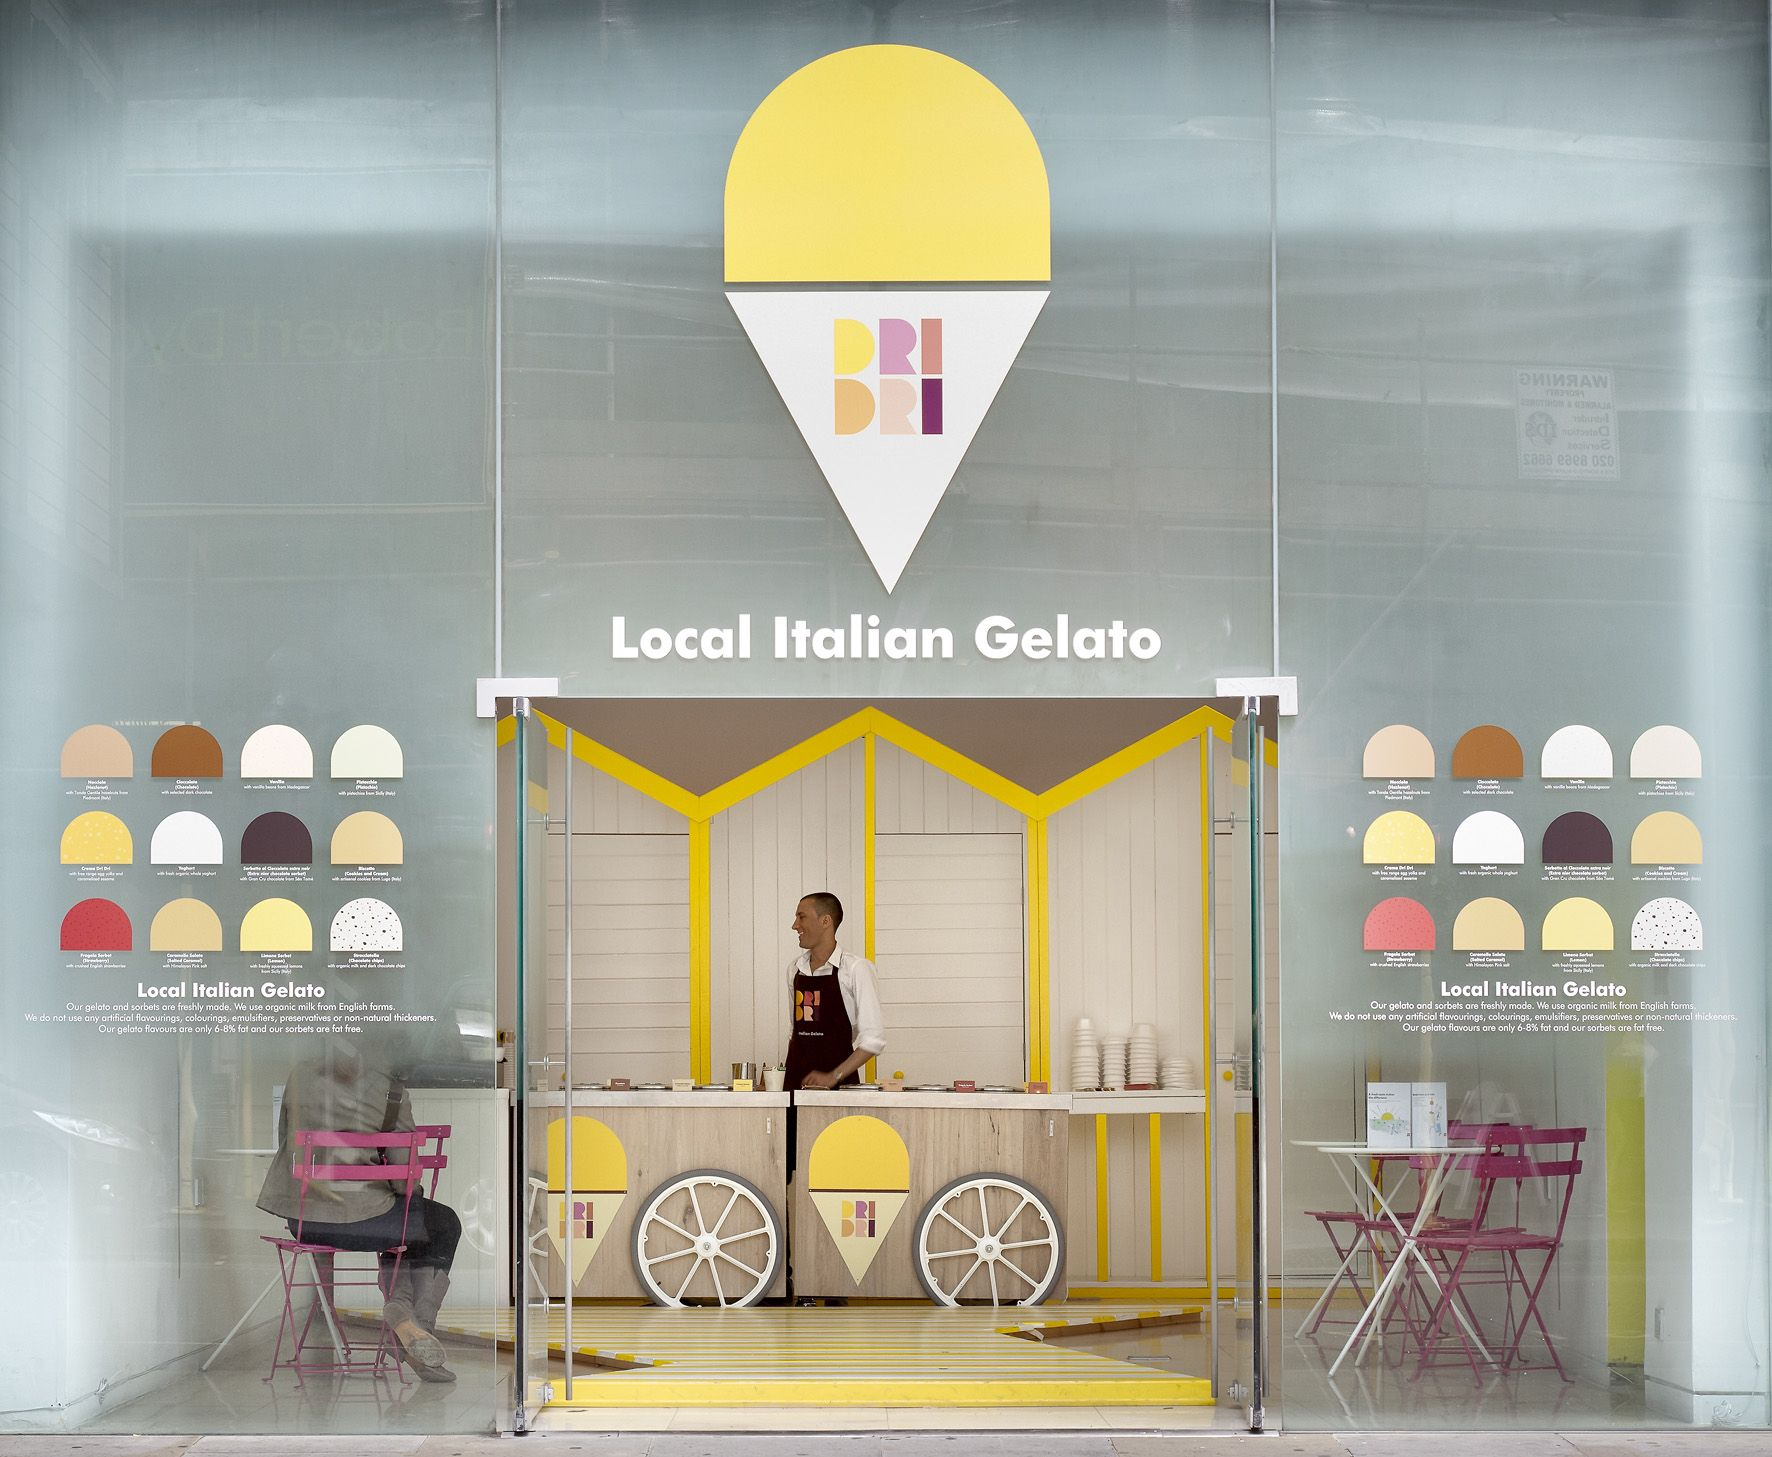 c8162ee2808 Watch out for Dri Dri's colourful seaside Italian gelato shop. All Photo  Credits: Elips Design. Last year it was in the design pop up spot Front  Room of St. ...